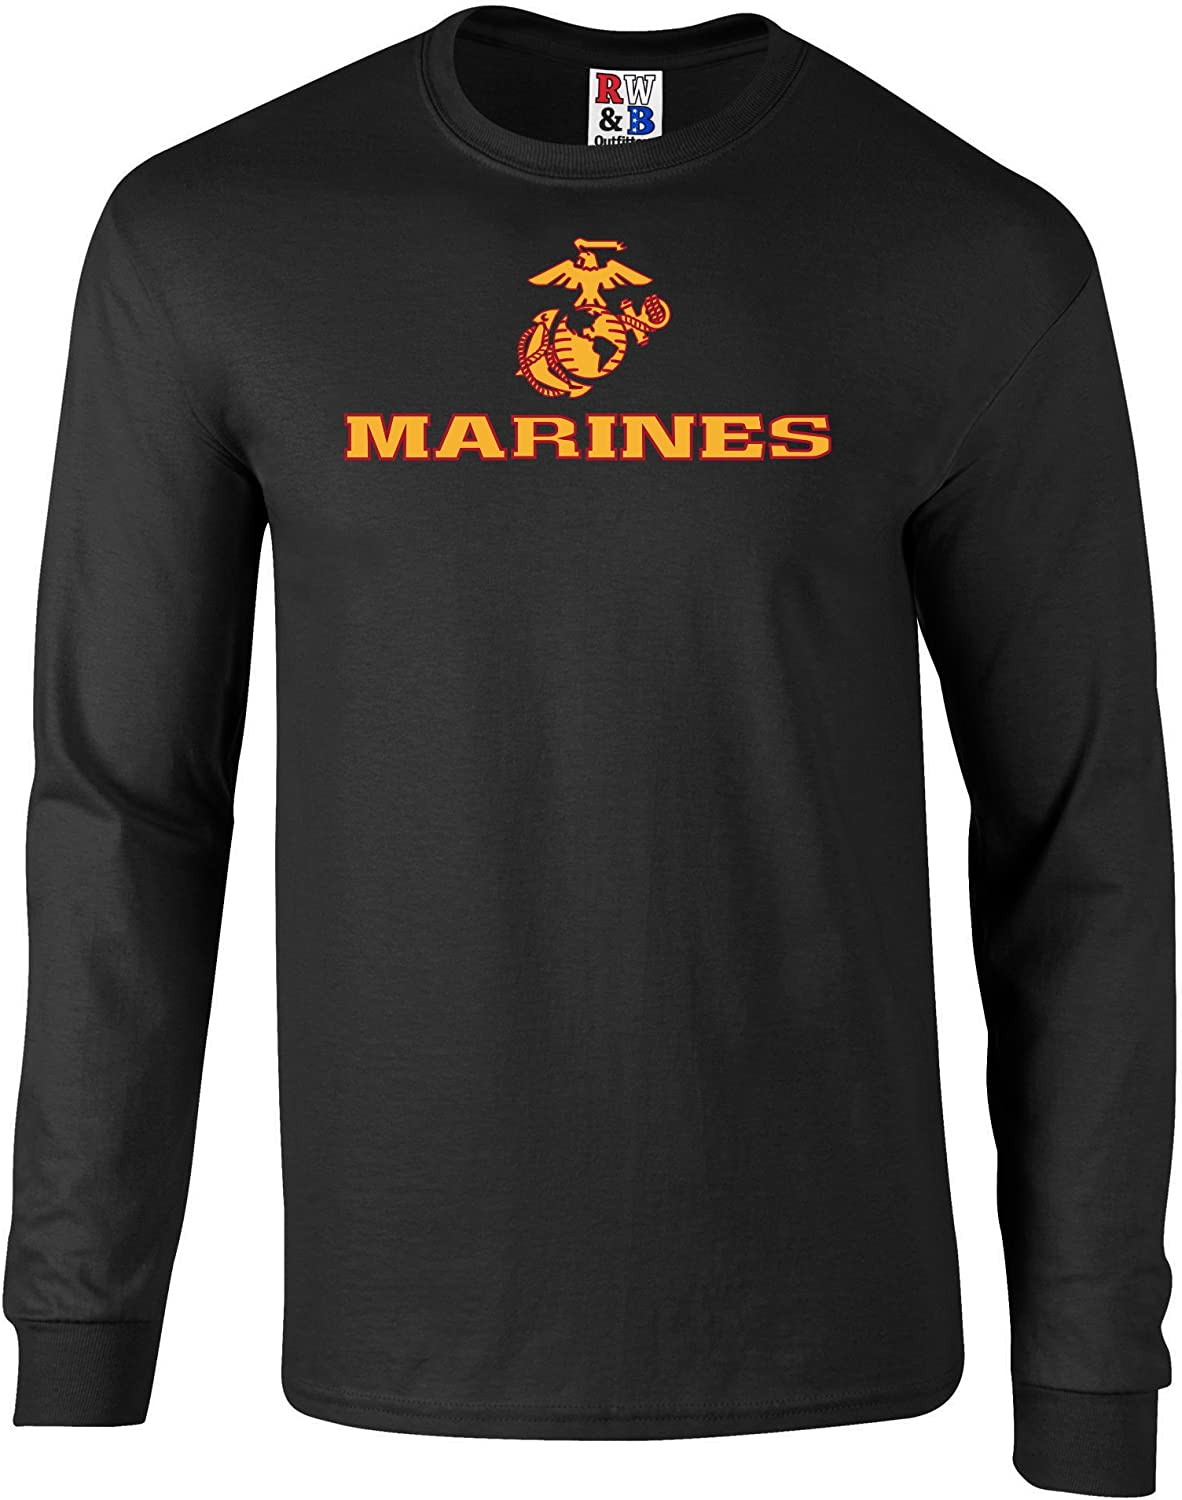 US Marines Two Tone Logo Graphic Long Sleeve Officially Licensed T Shirt